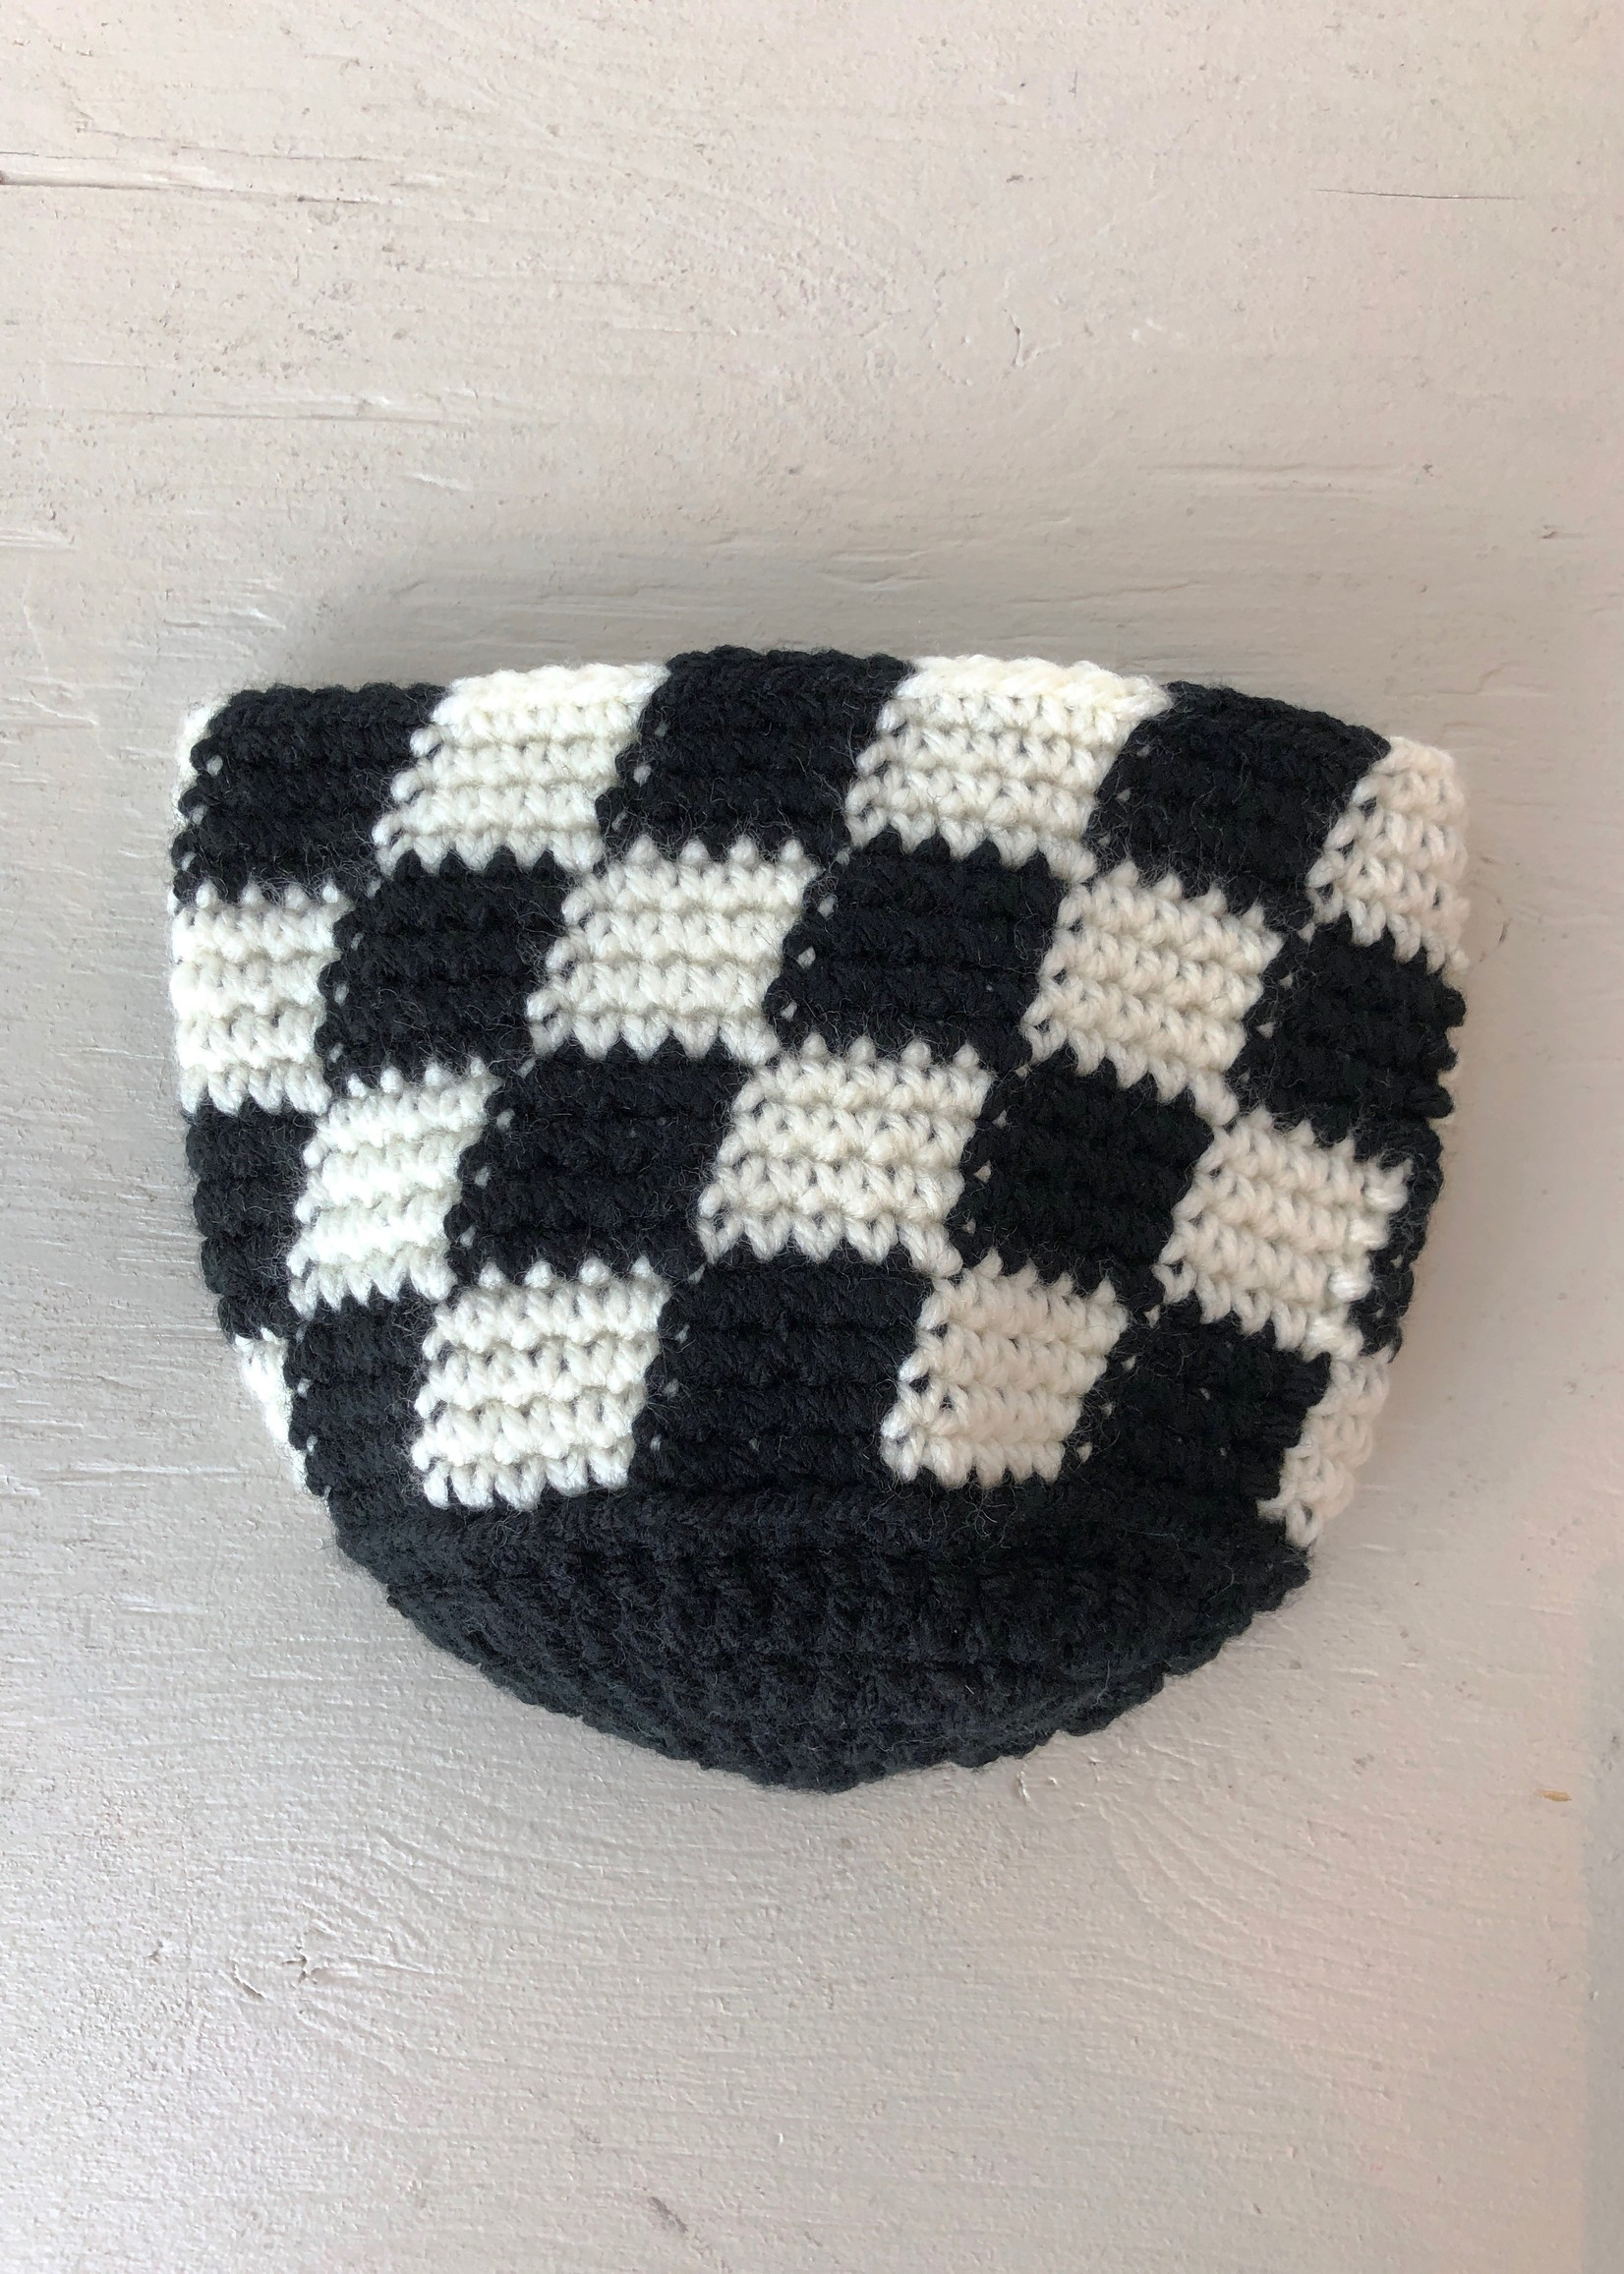 Slow May Checkered Crochet Plant Cozy by Slow May